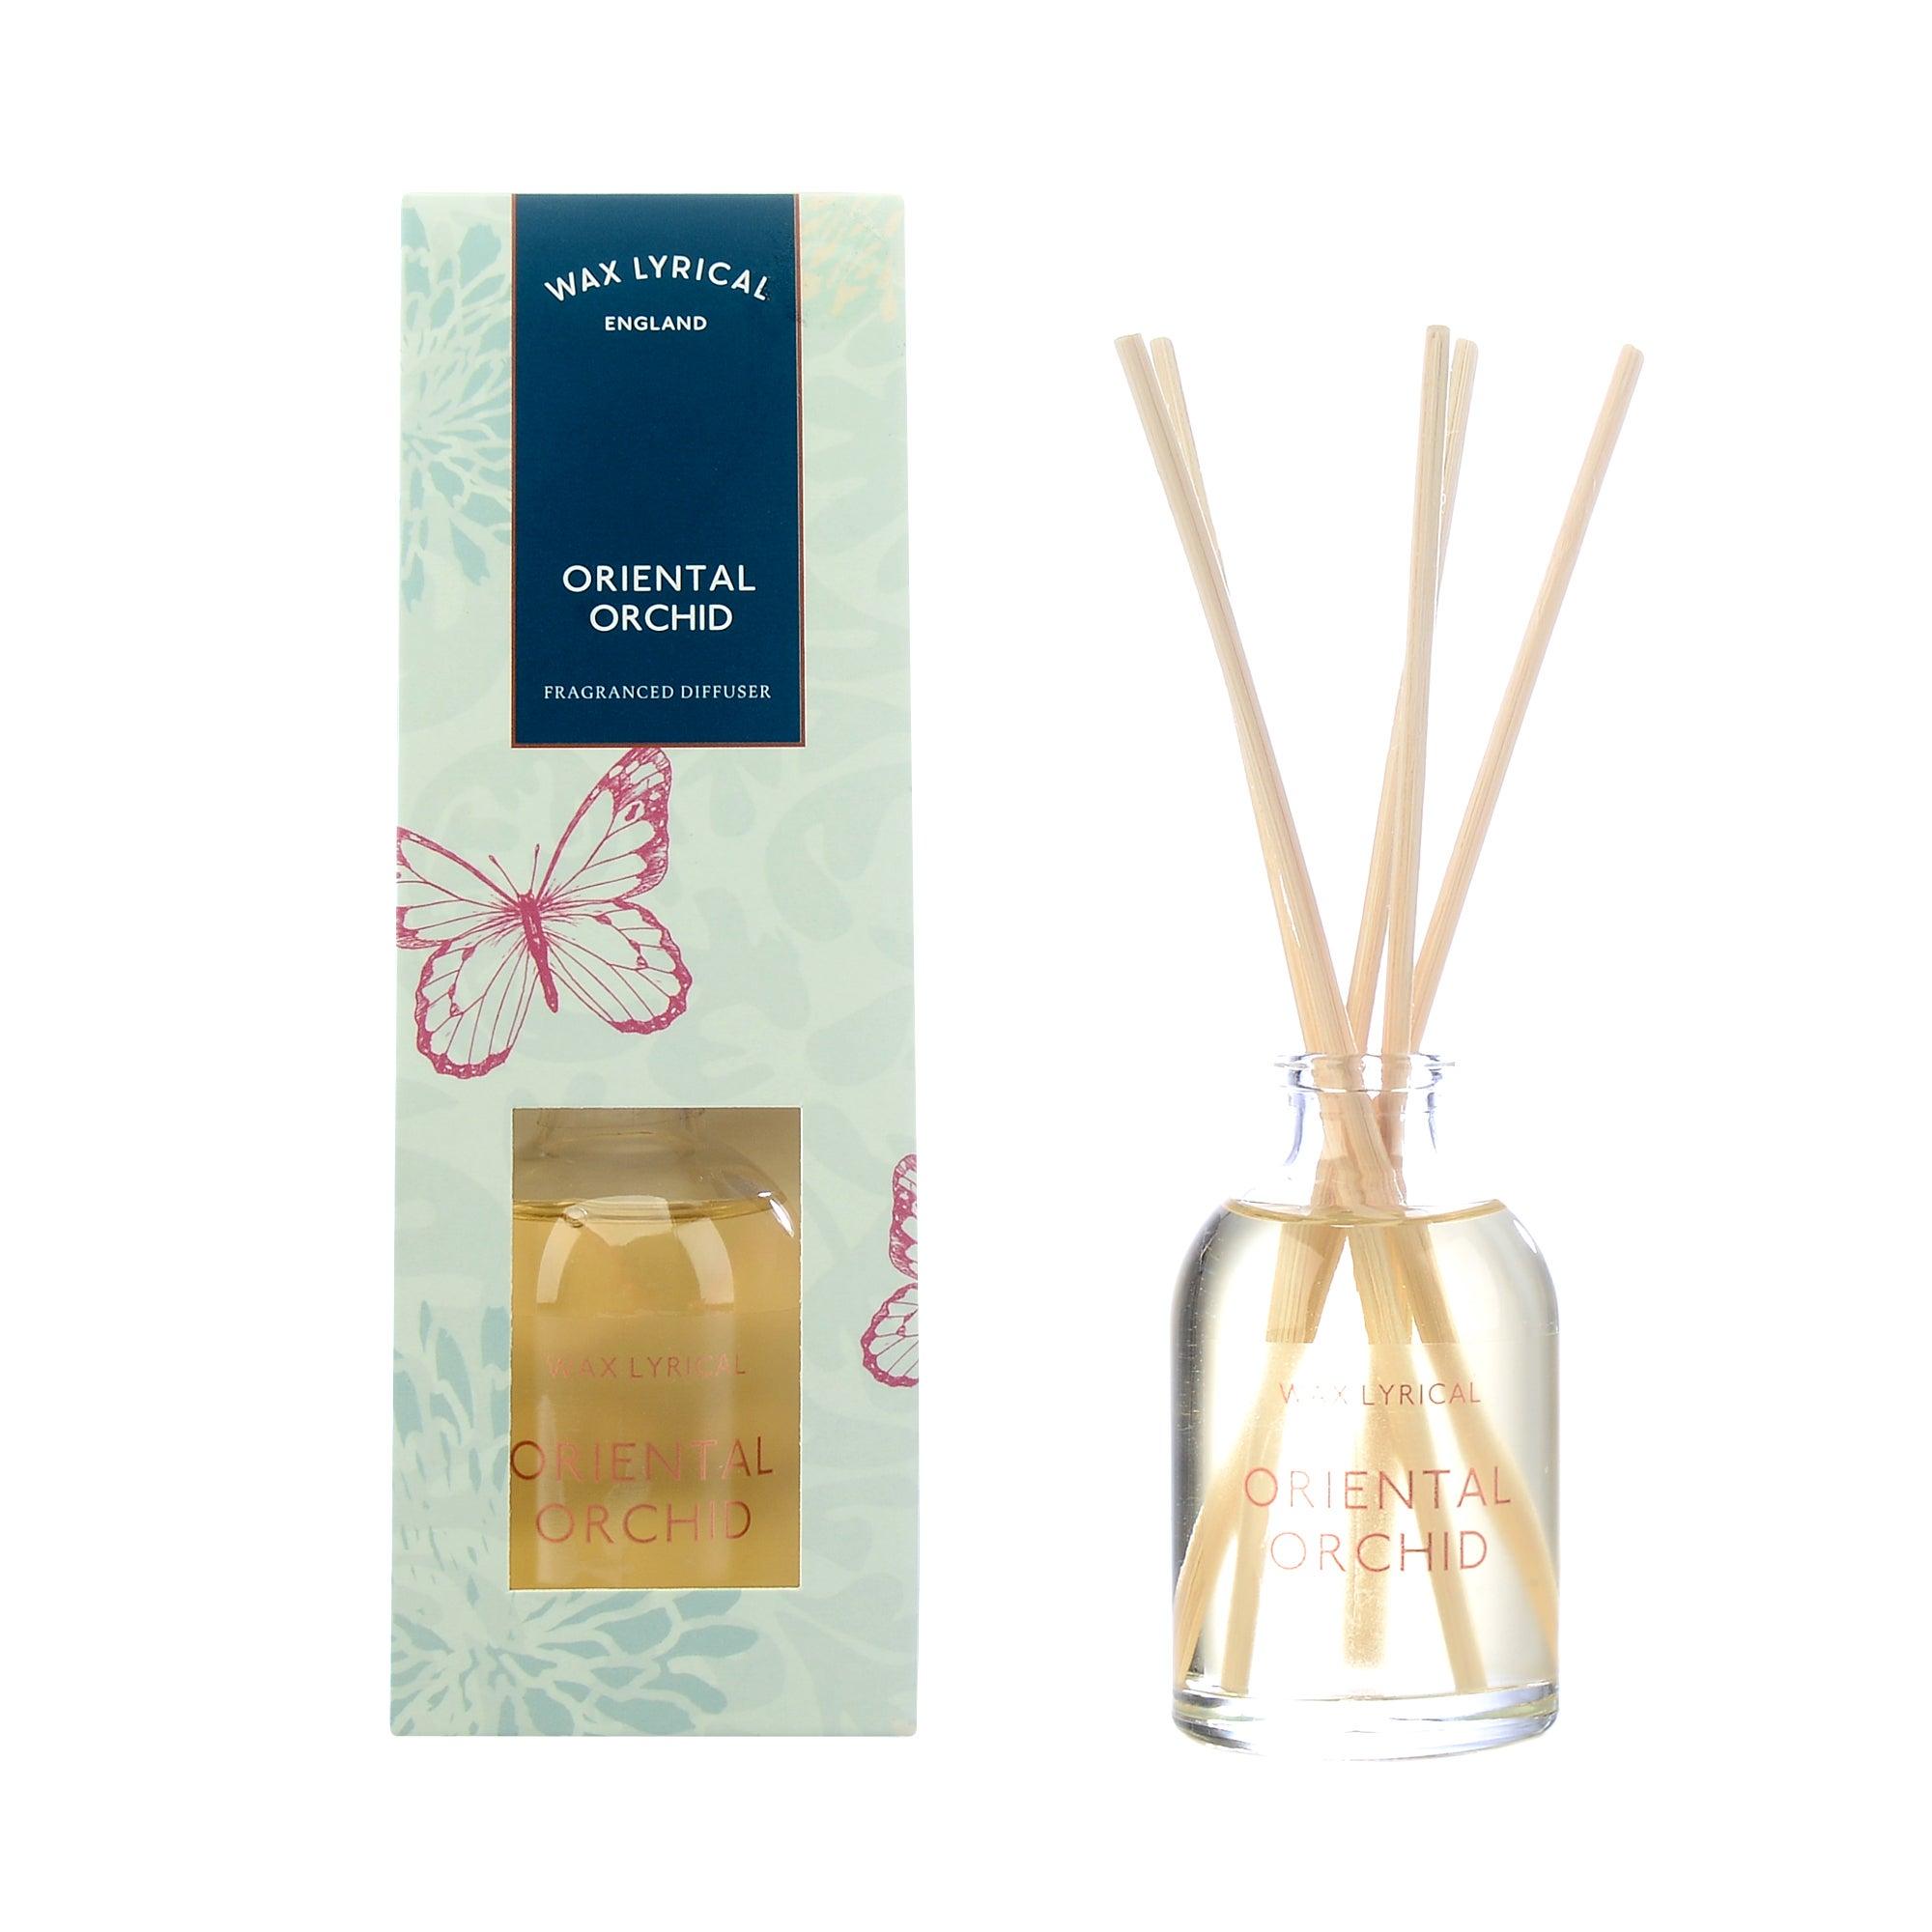 Wax Lyrical Wild Orchid 50ml Reed Diffuser